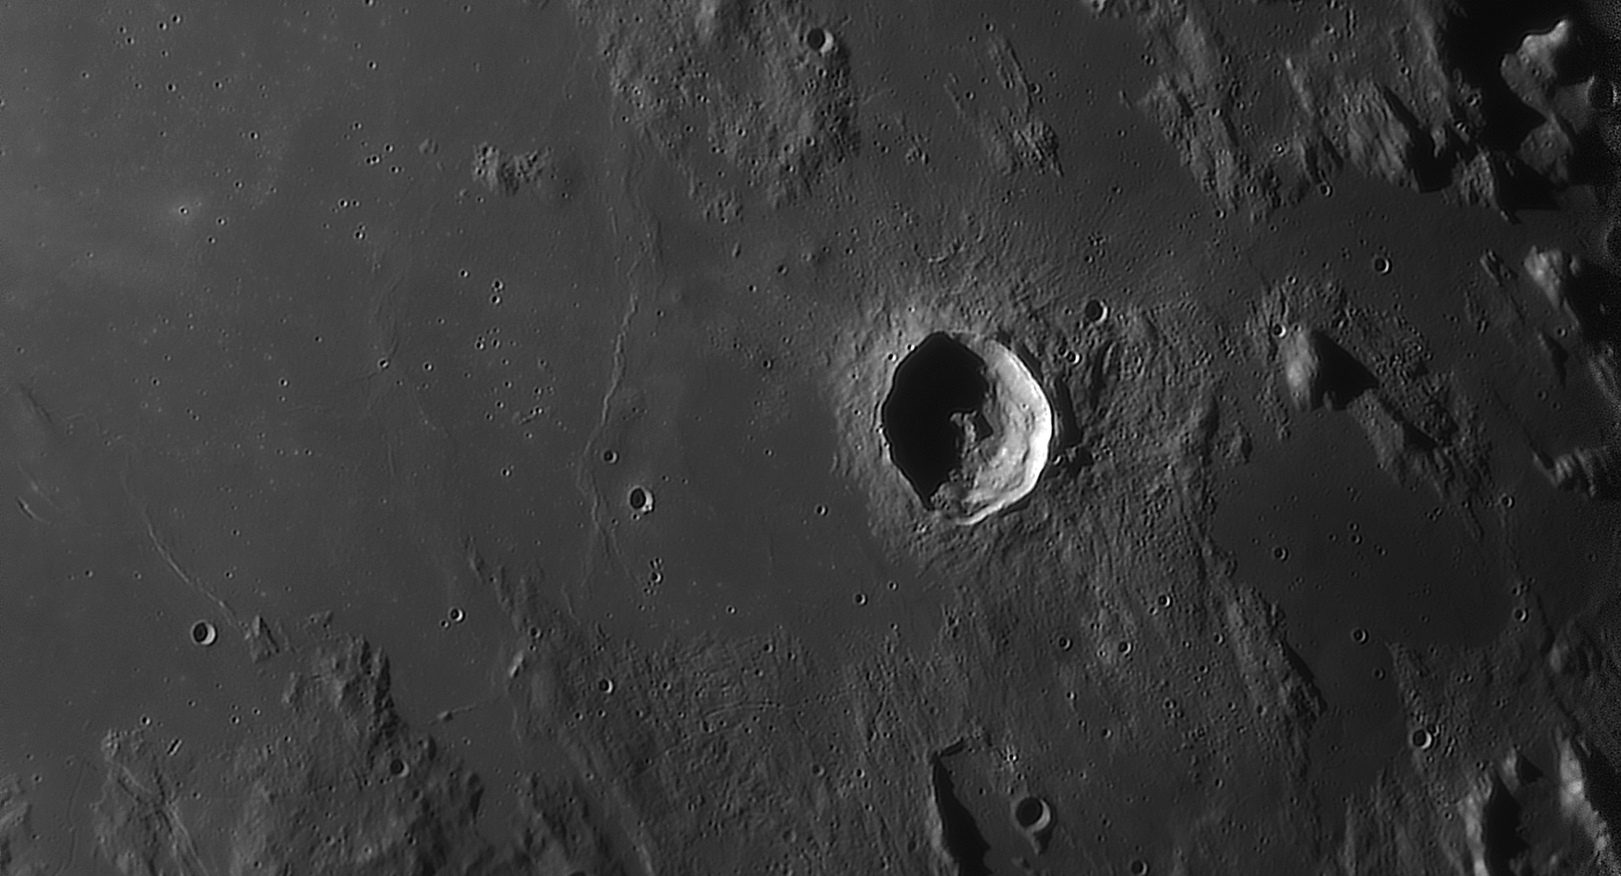 large.moon_20_09_2019_04_05_MANIL.jpg.71